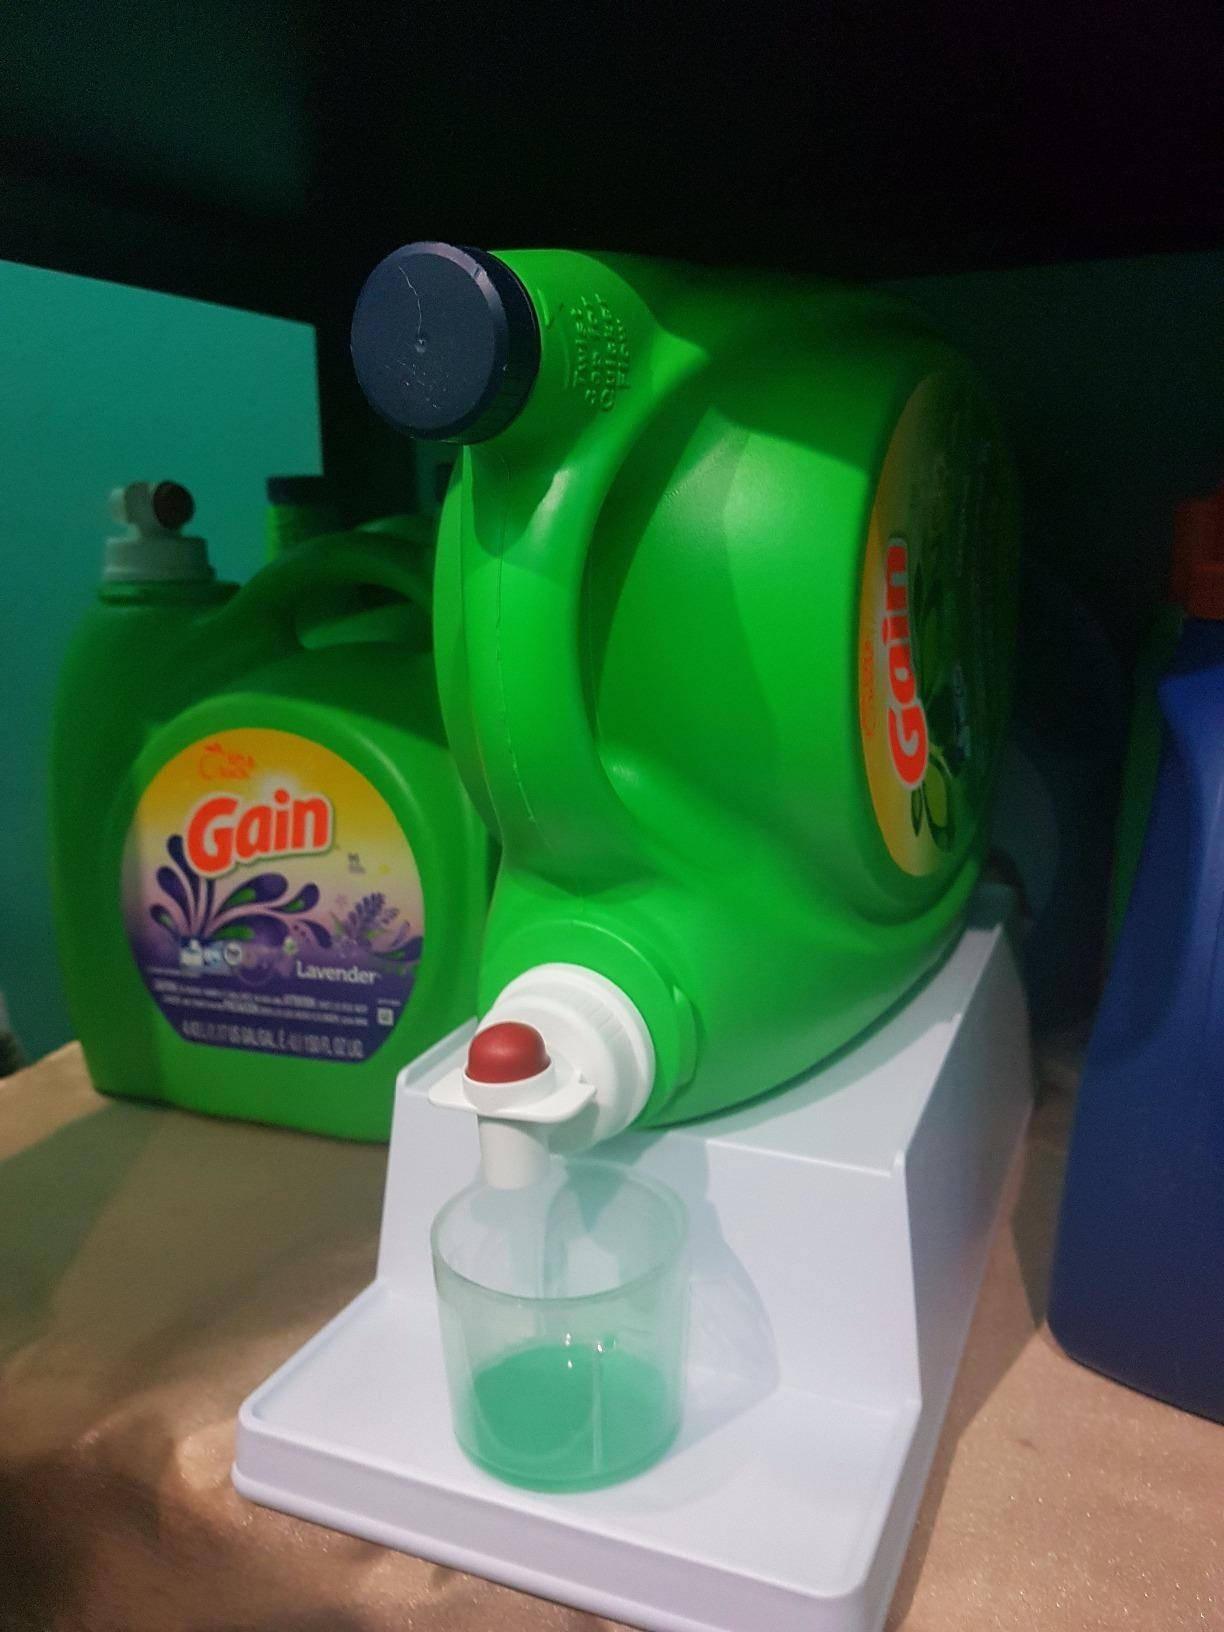 the two-tier white stand holding a sideways detergent bottle on top and a detergent cup below, so the bottle can pour right into it